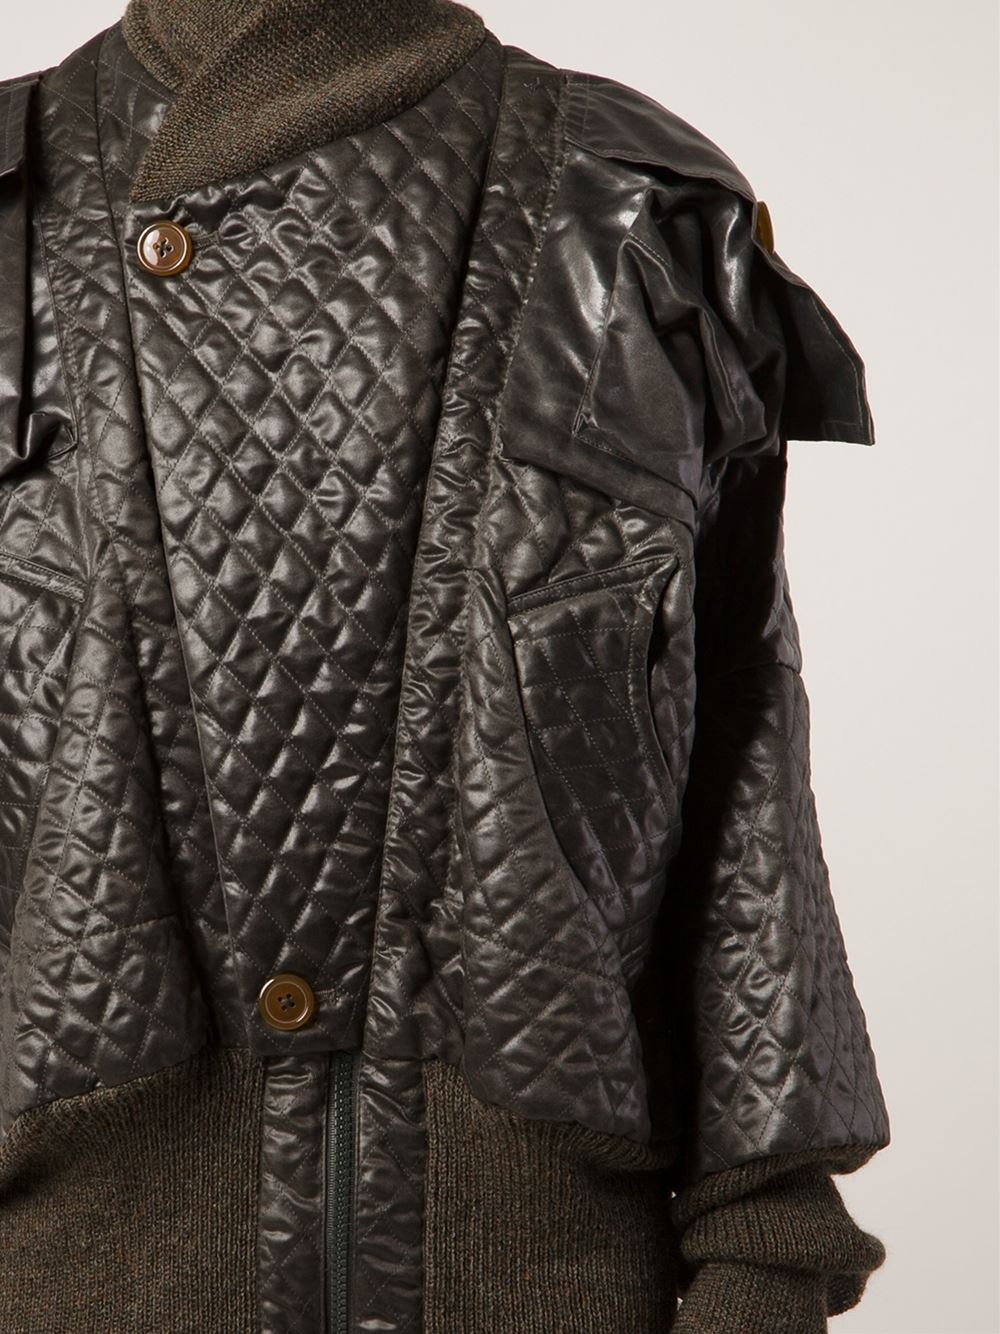 Vivienne Westwood Clint Eastwood Bomber Jacket In Black Lyst